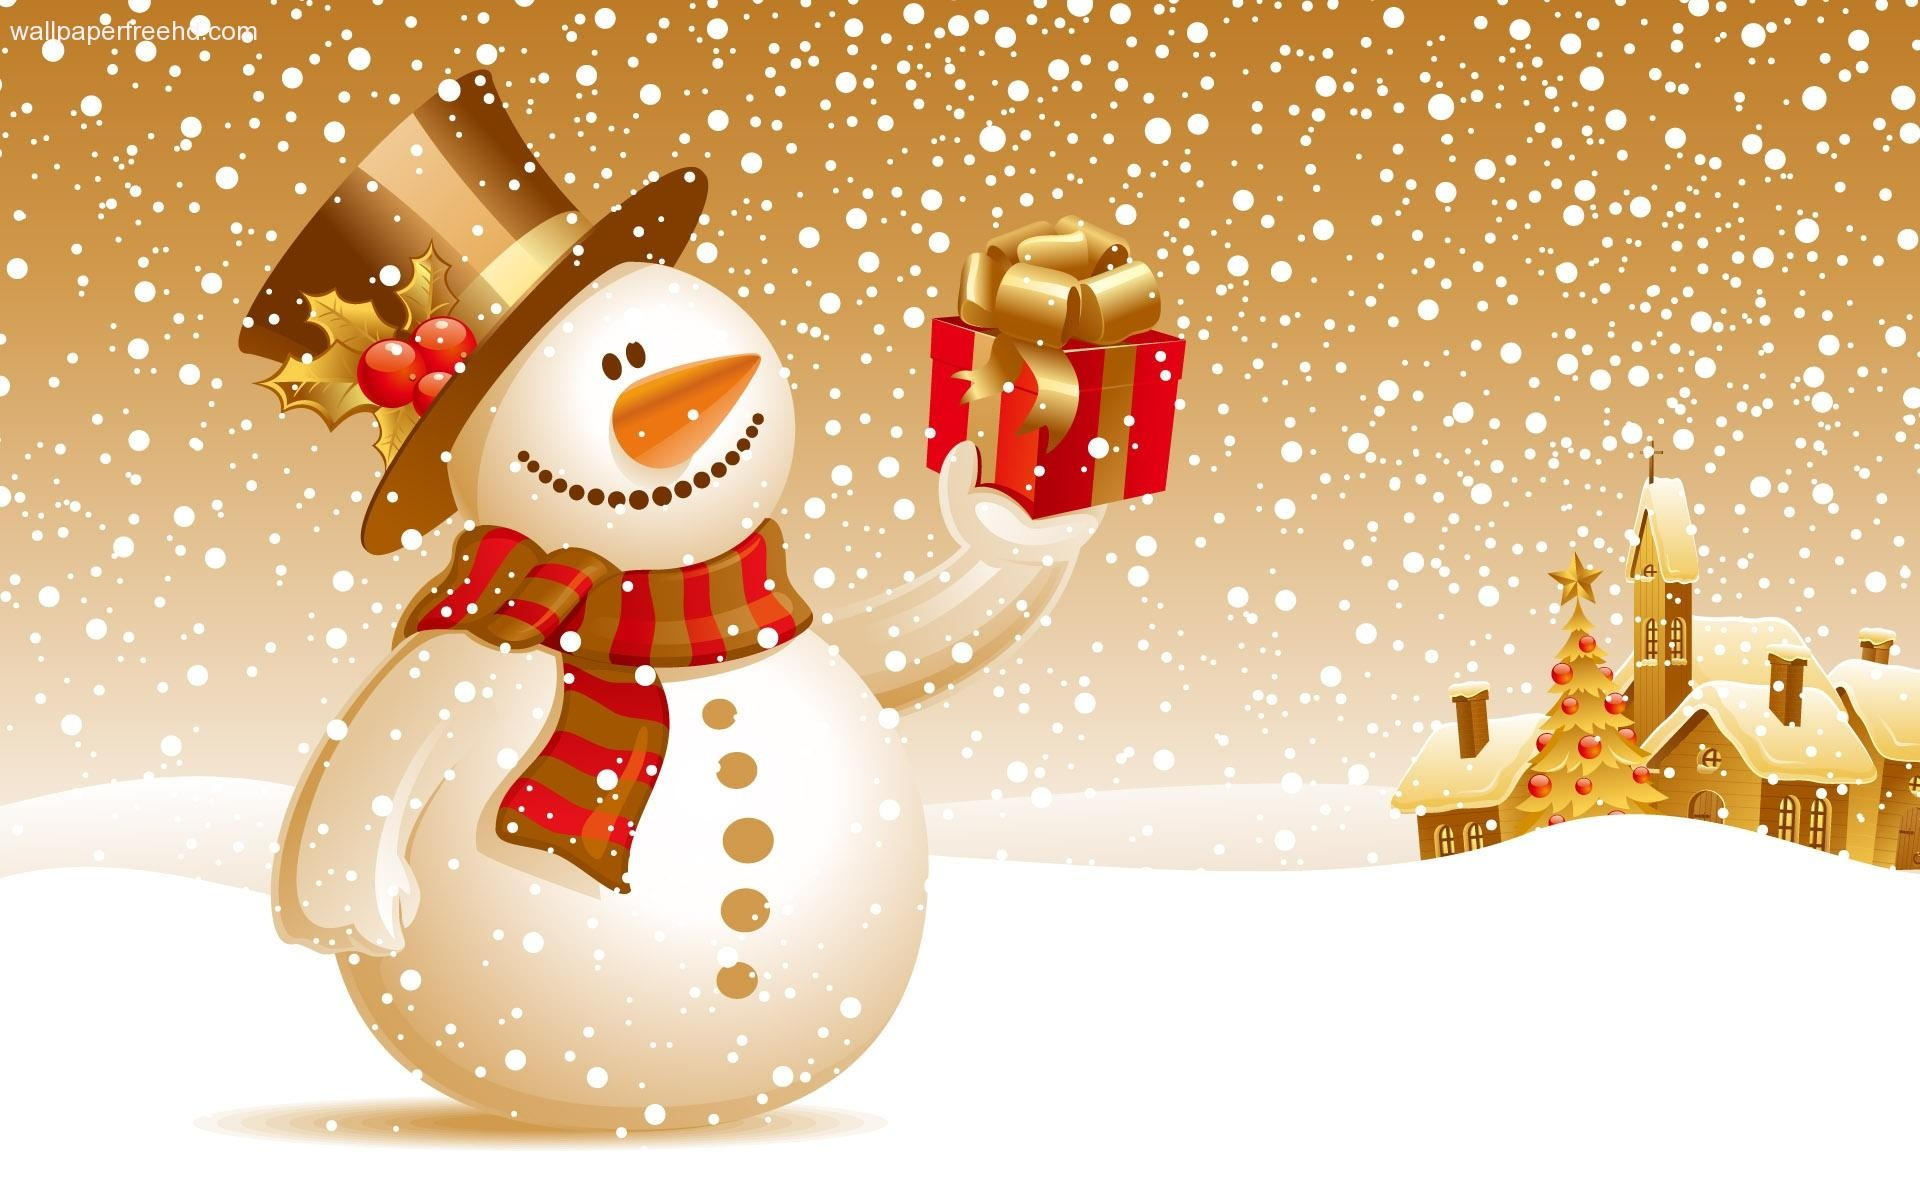 1920x1200 holiday backgrounds 1920x1200 download free